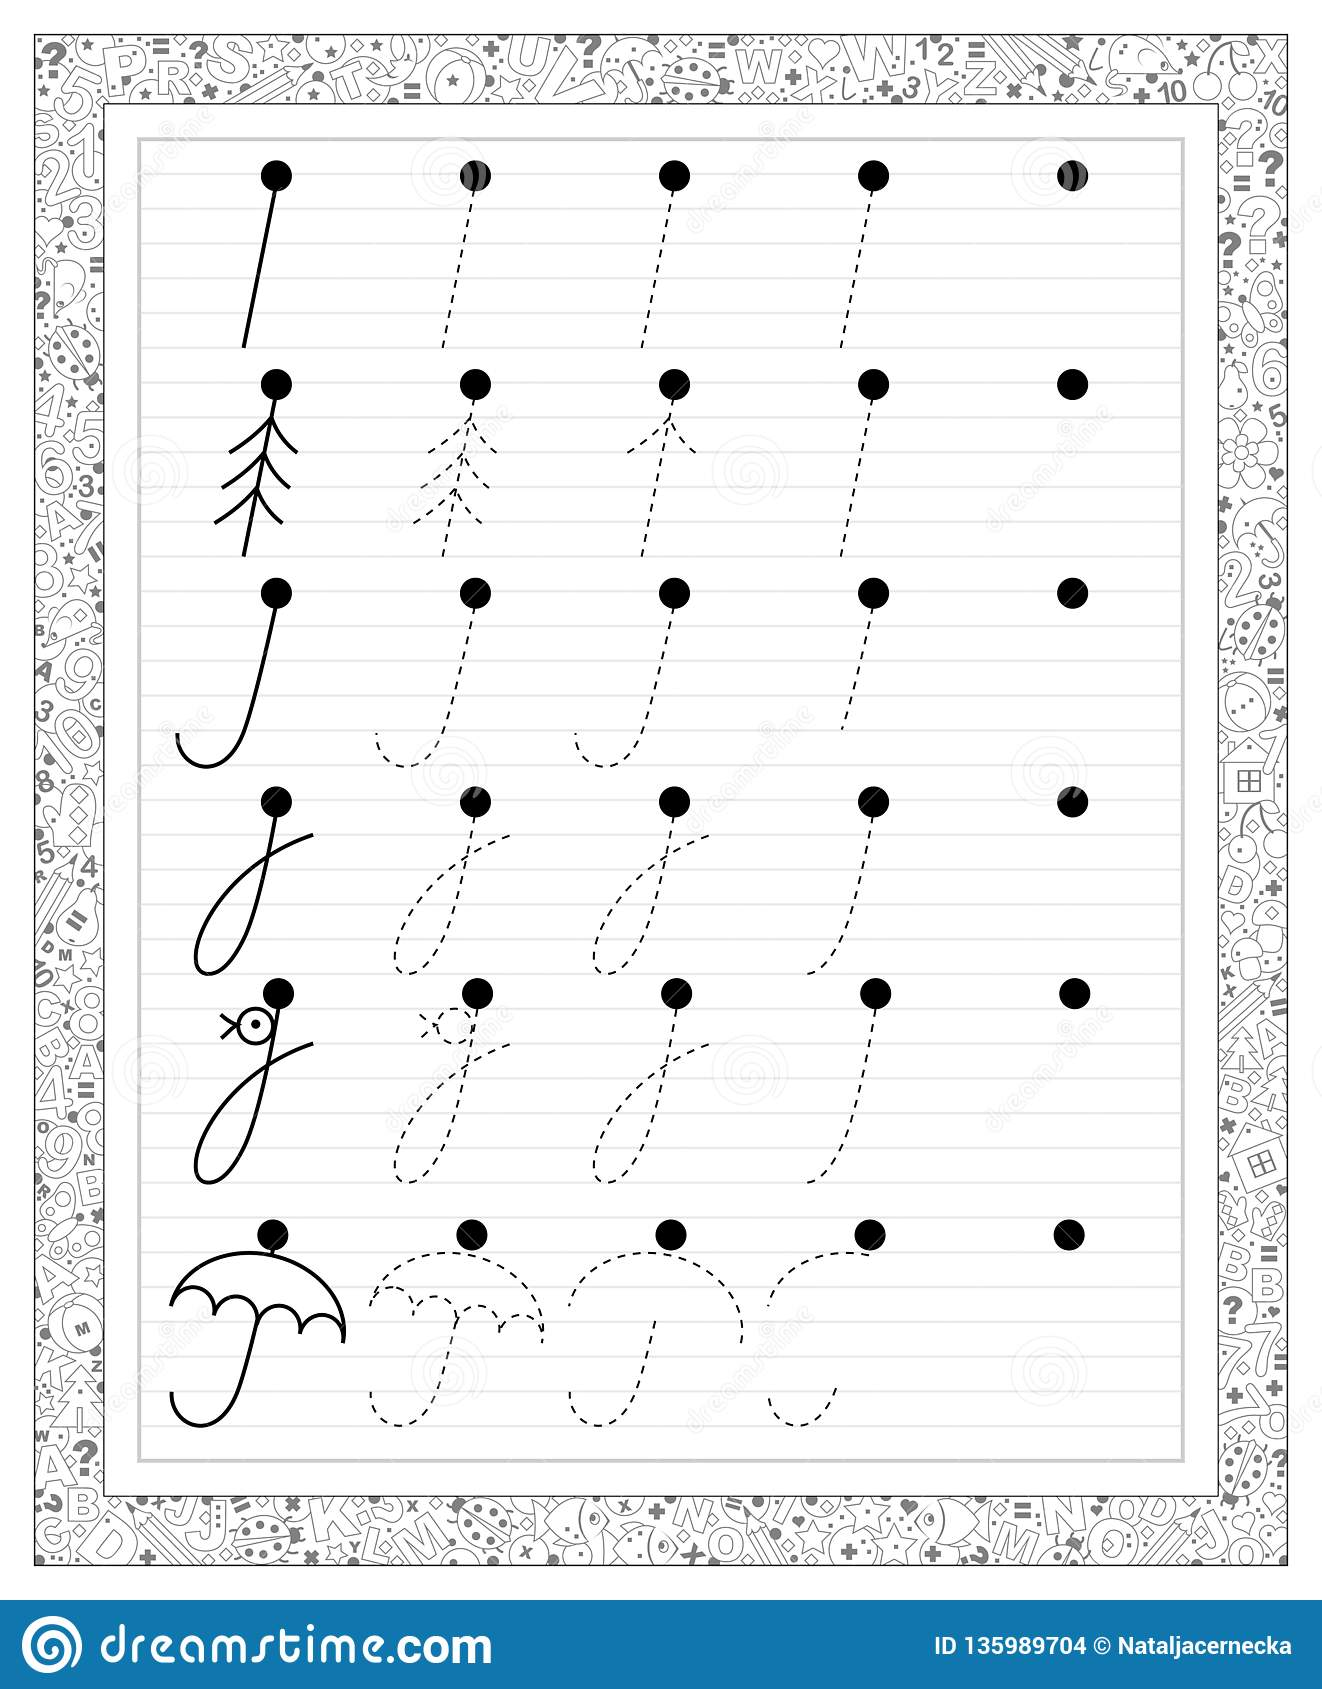 Black And White Educational Page With Tracing Exercises In